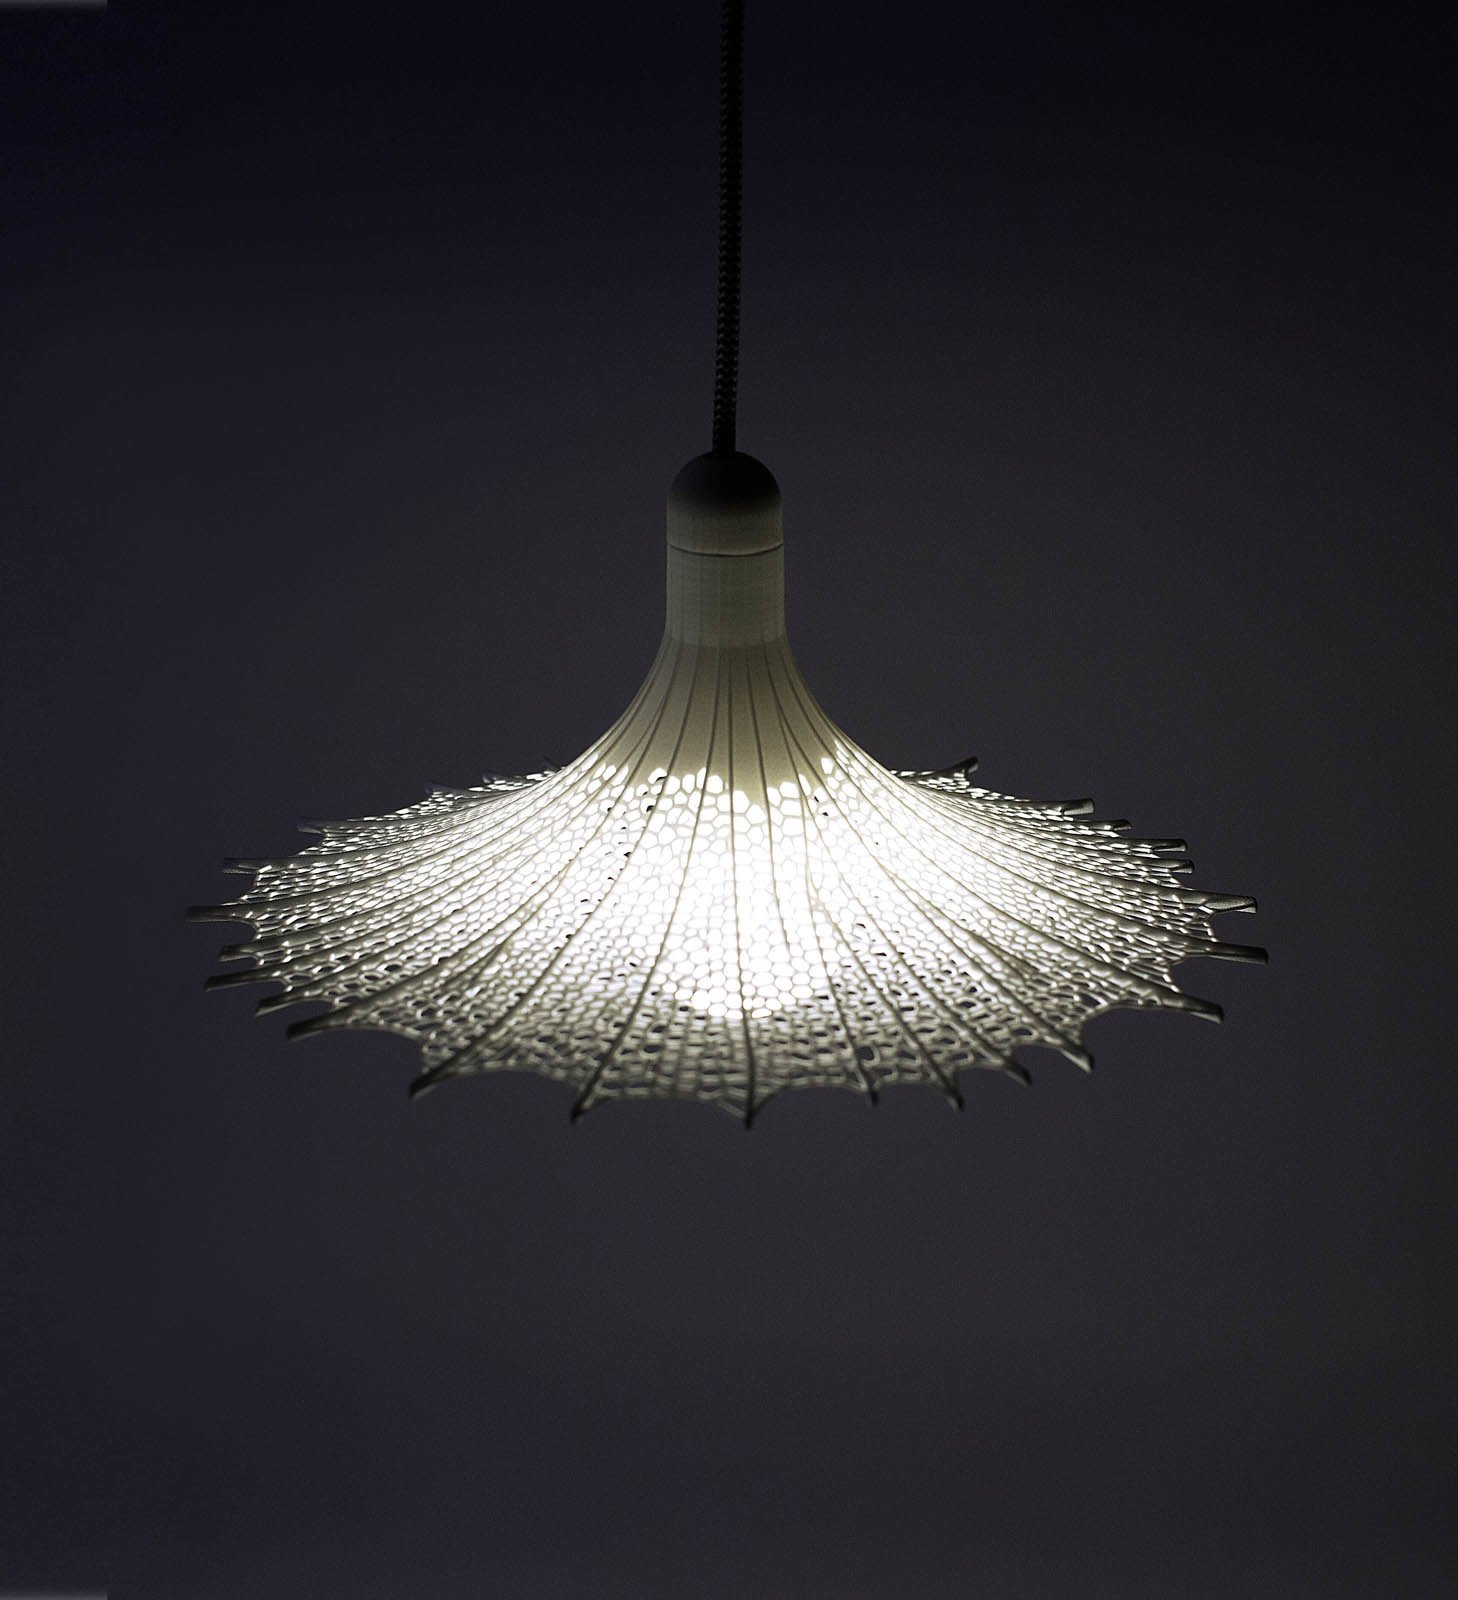 Lanzavecchia + Wai, whom we featured in our May 2013 issue, created the Biophilia lampshade, an industrial product designed as a living organism.  3D Printed Lighting by Exnovo by Diana Budds